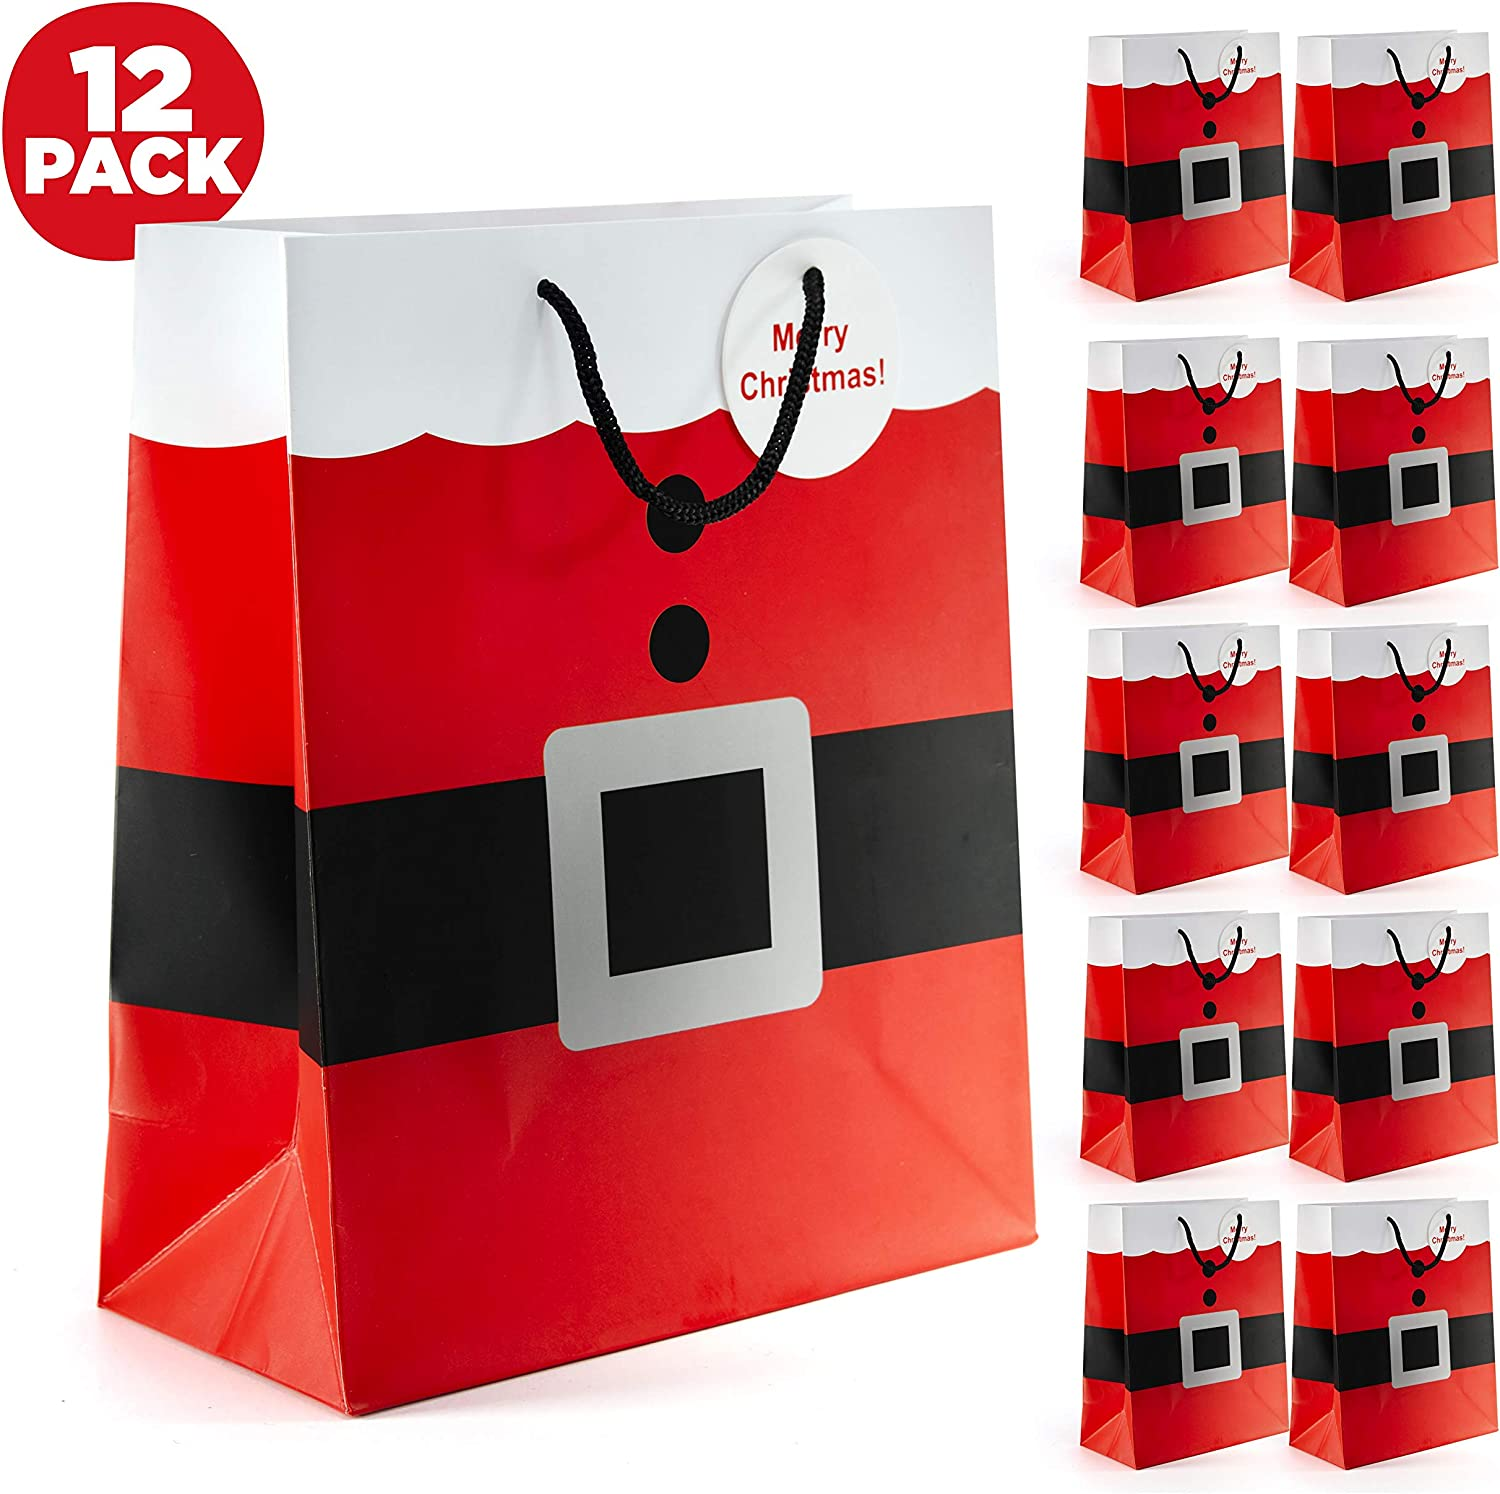 Prextex Santa Clause Suit Medium Gift Bags Bags - 12 Piece Pack